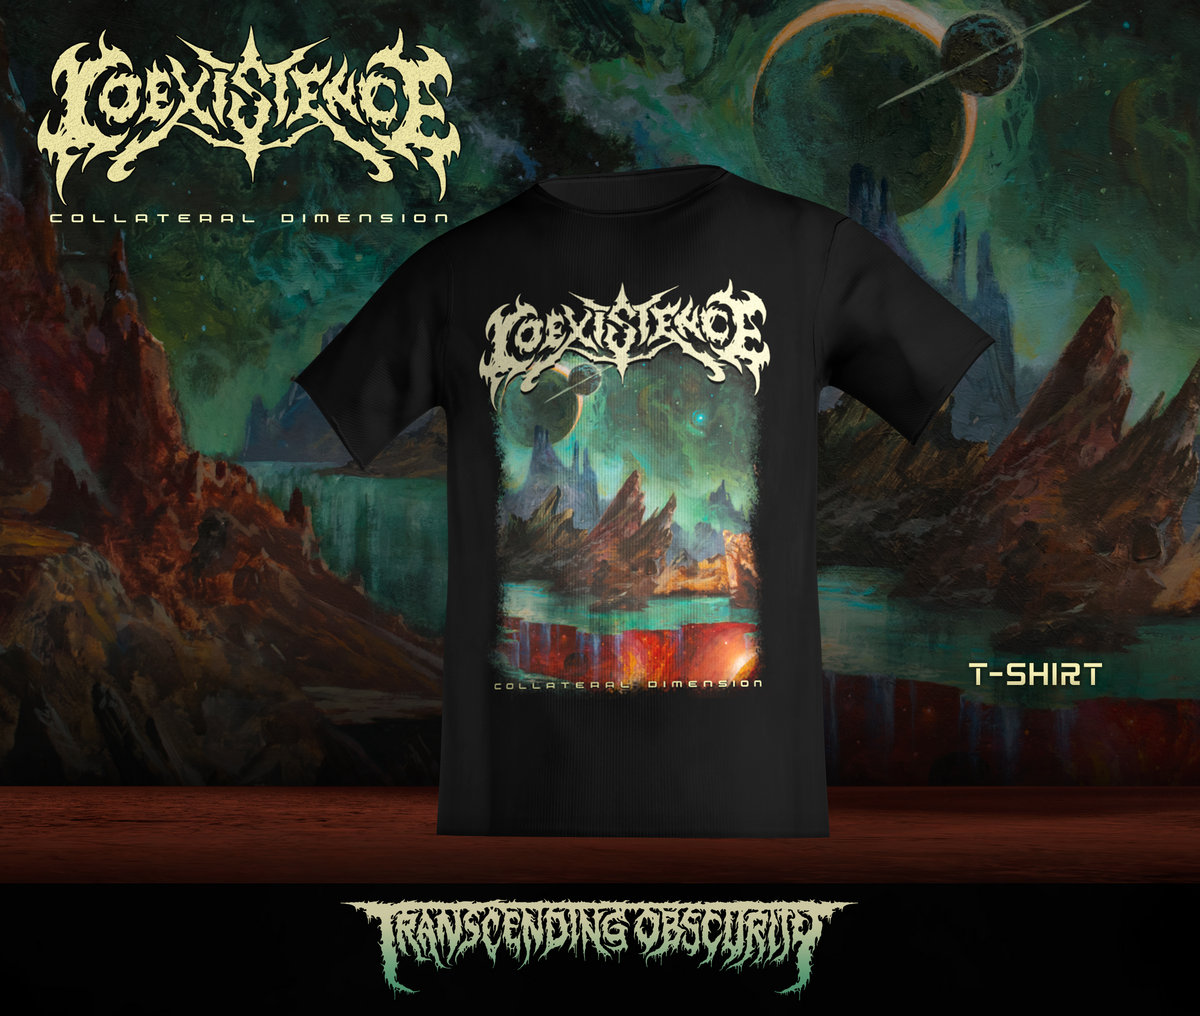 COEXISTENCE (Italy) - Collateral Dimension T-shirt (Limited to 30)